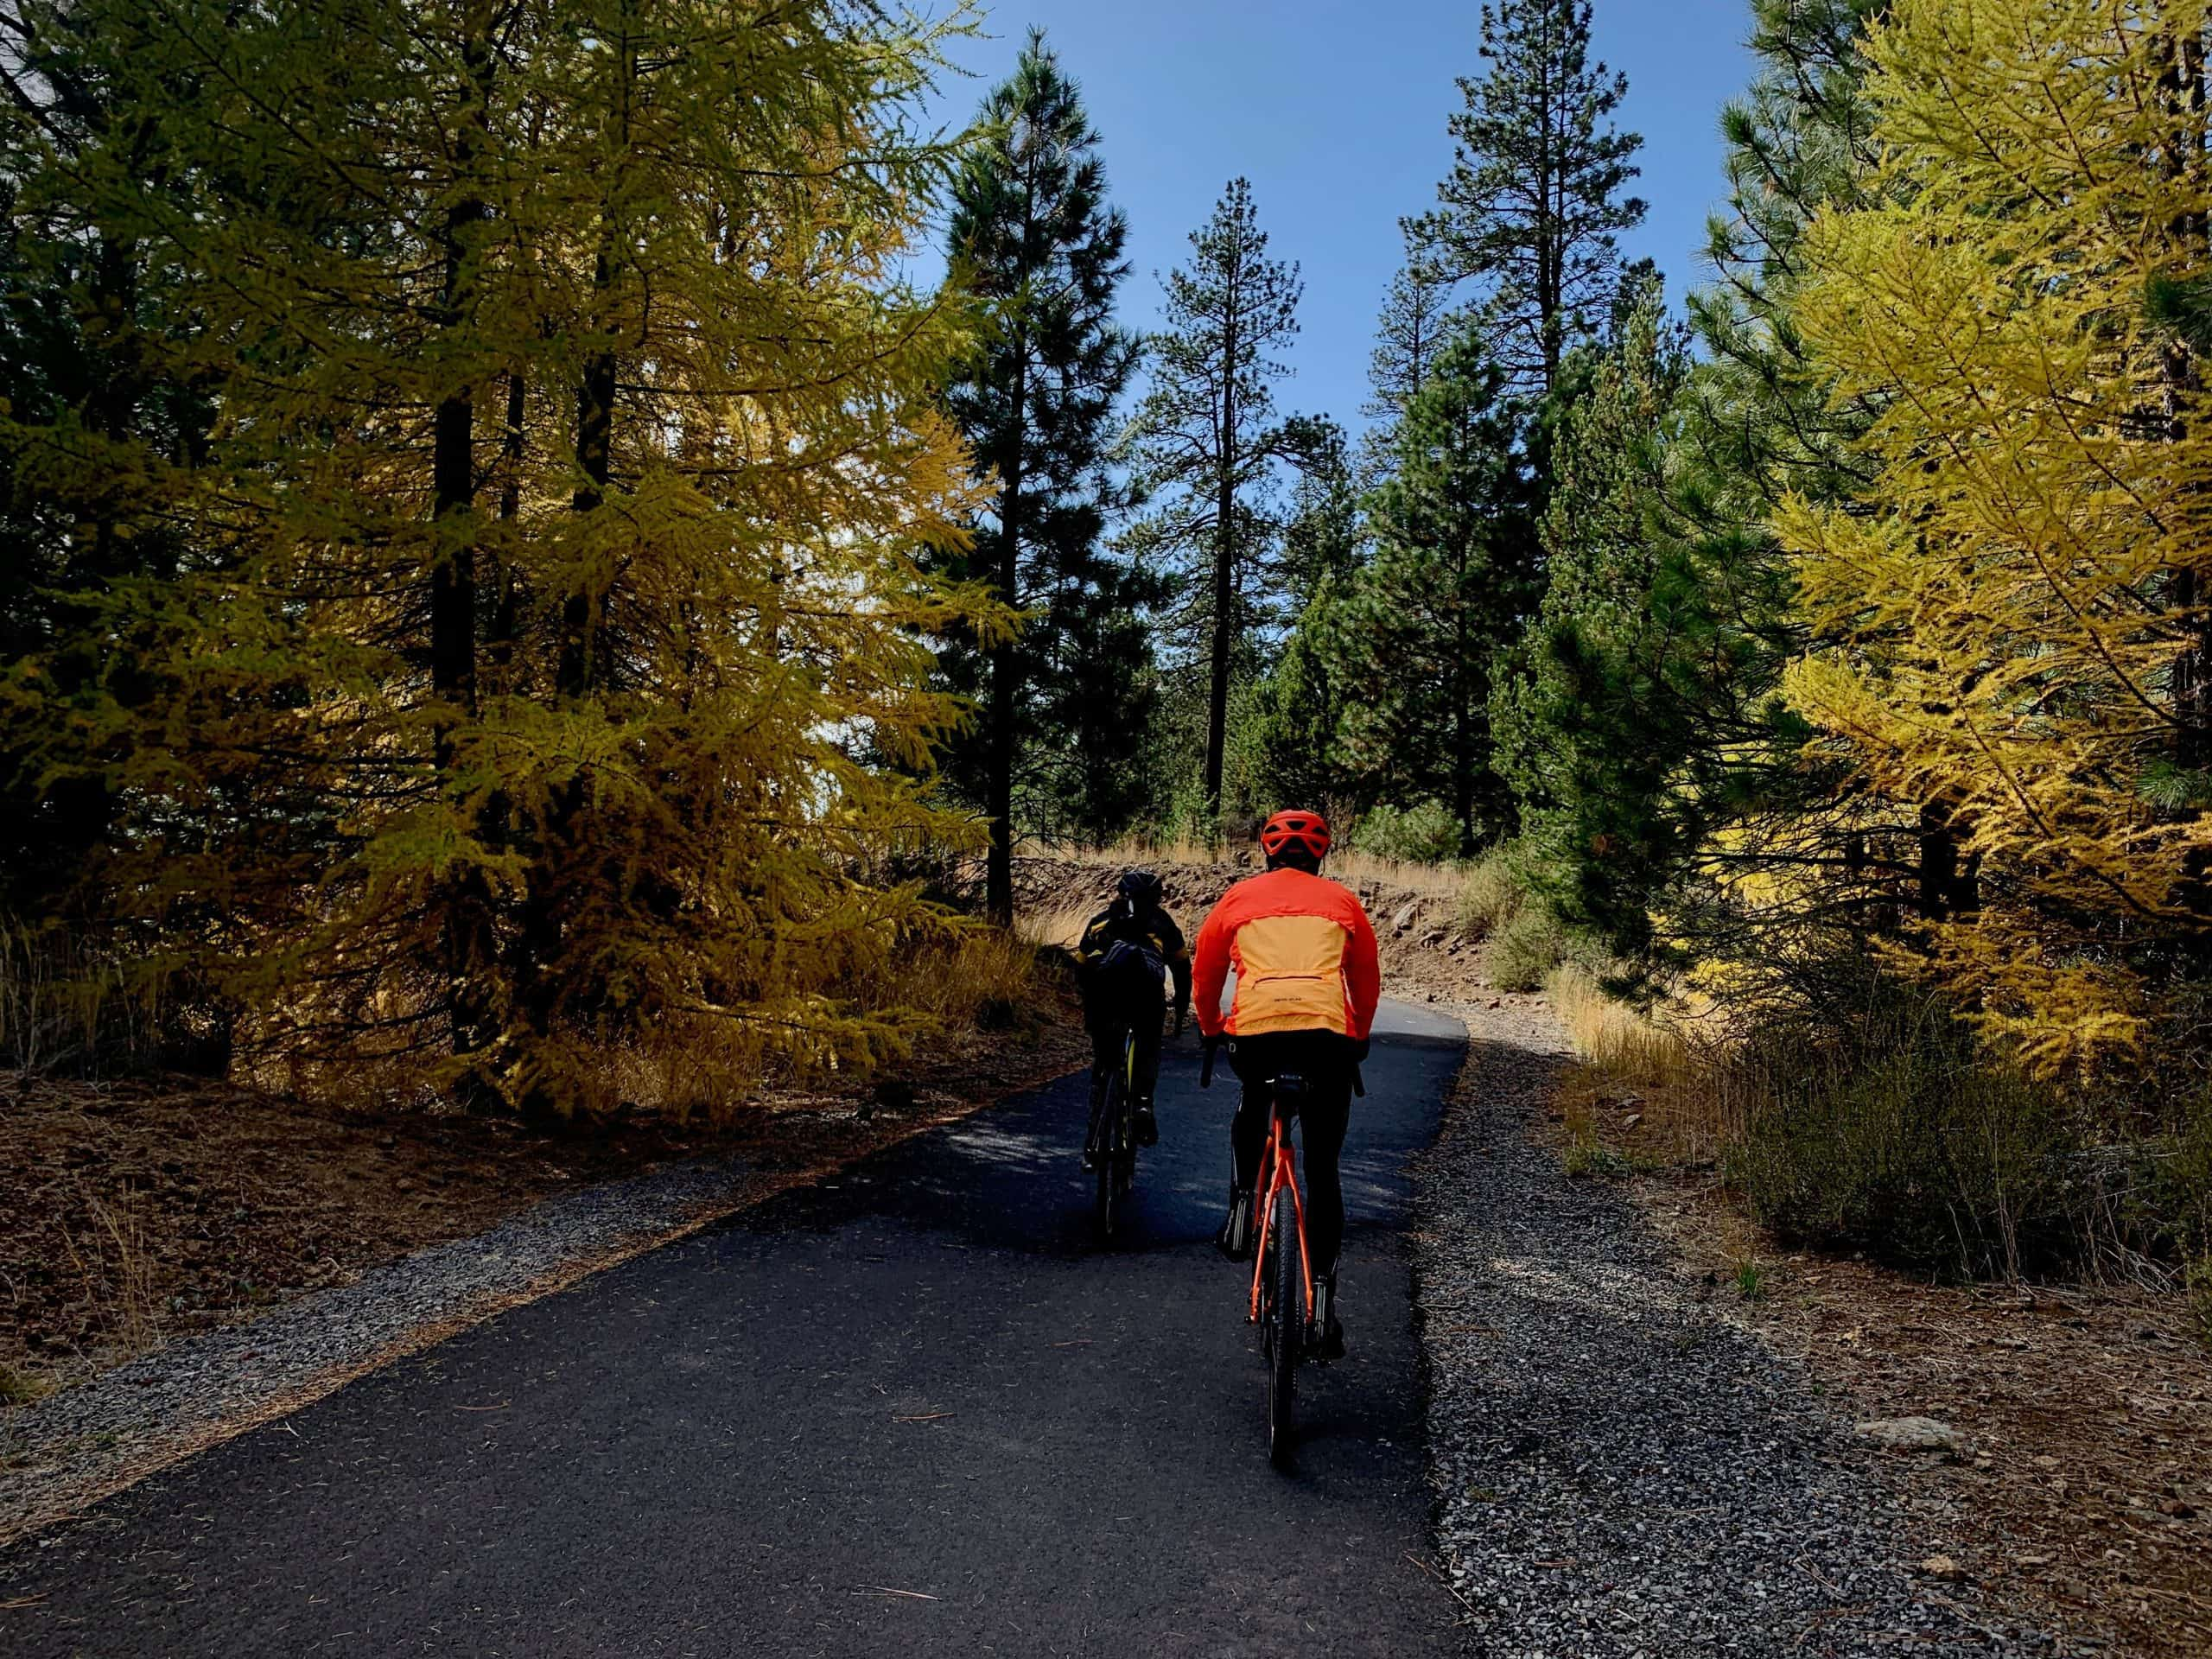 Two cyclists on gravel bikes riding the paved path to Lava Lands Visitor center near Sunriver, Oregon.